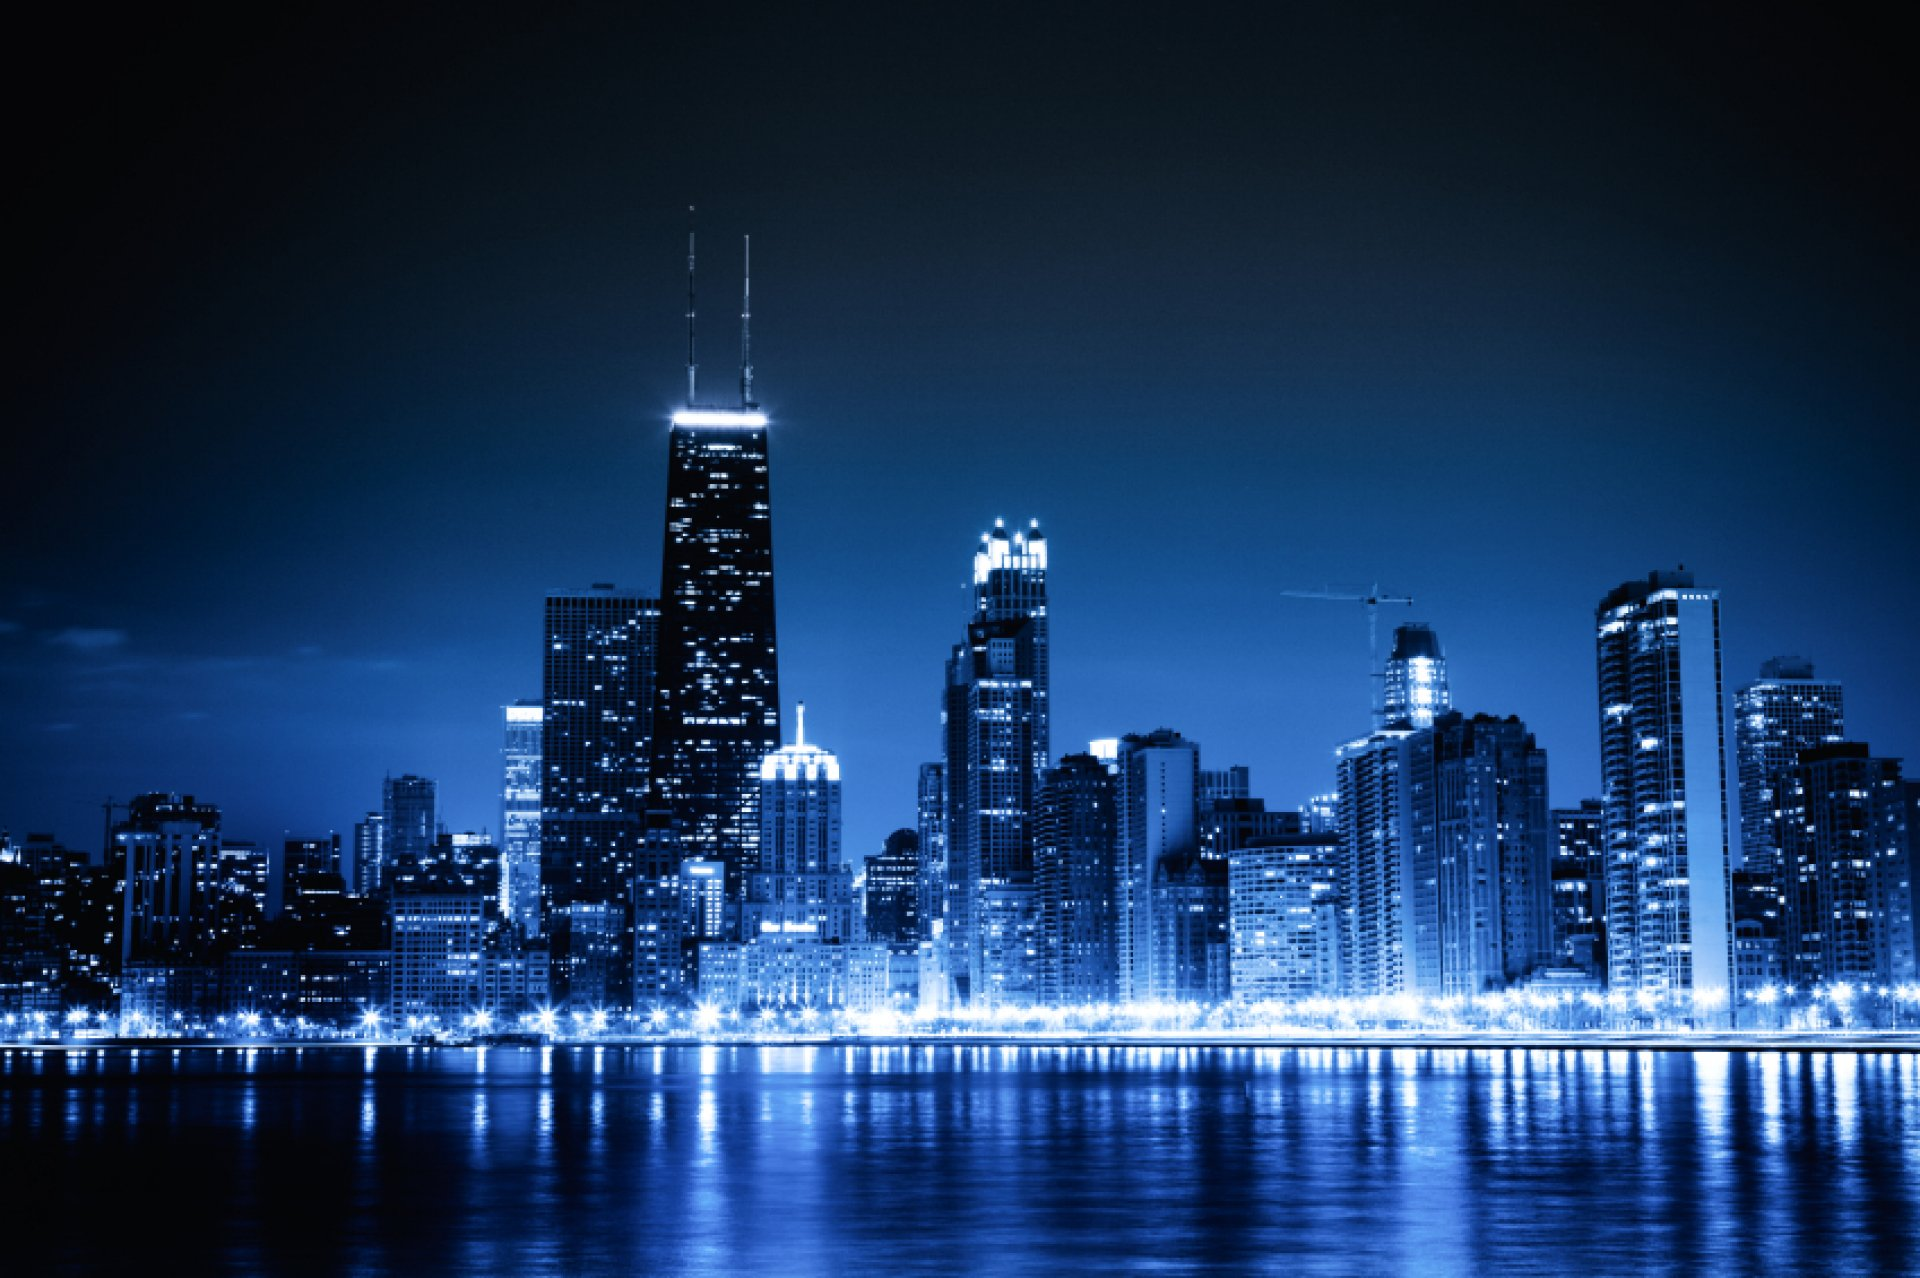 chicago-lights-skyline-stunning-photo-desktop-hd-new-wallpaper.jpg